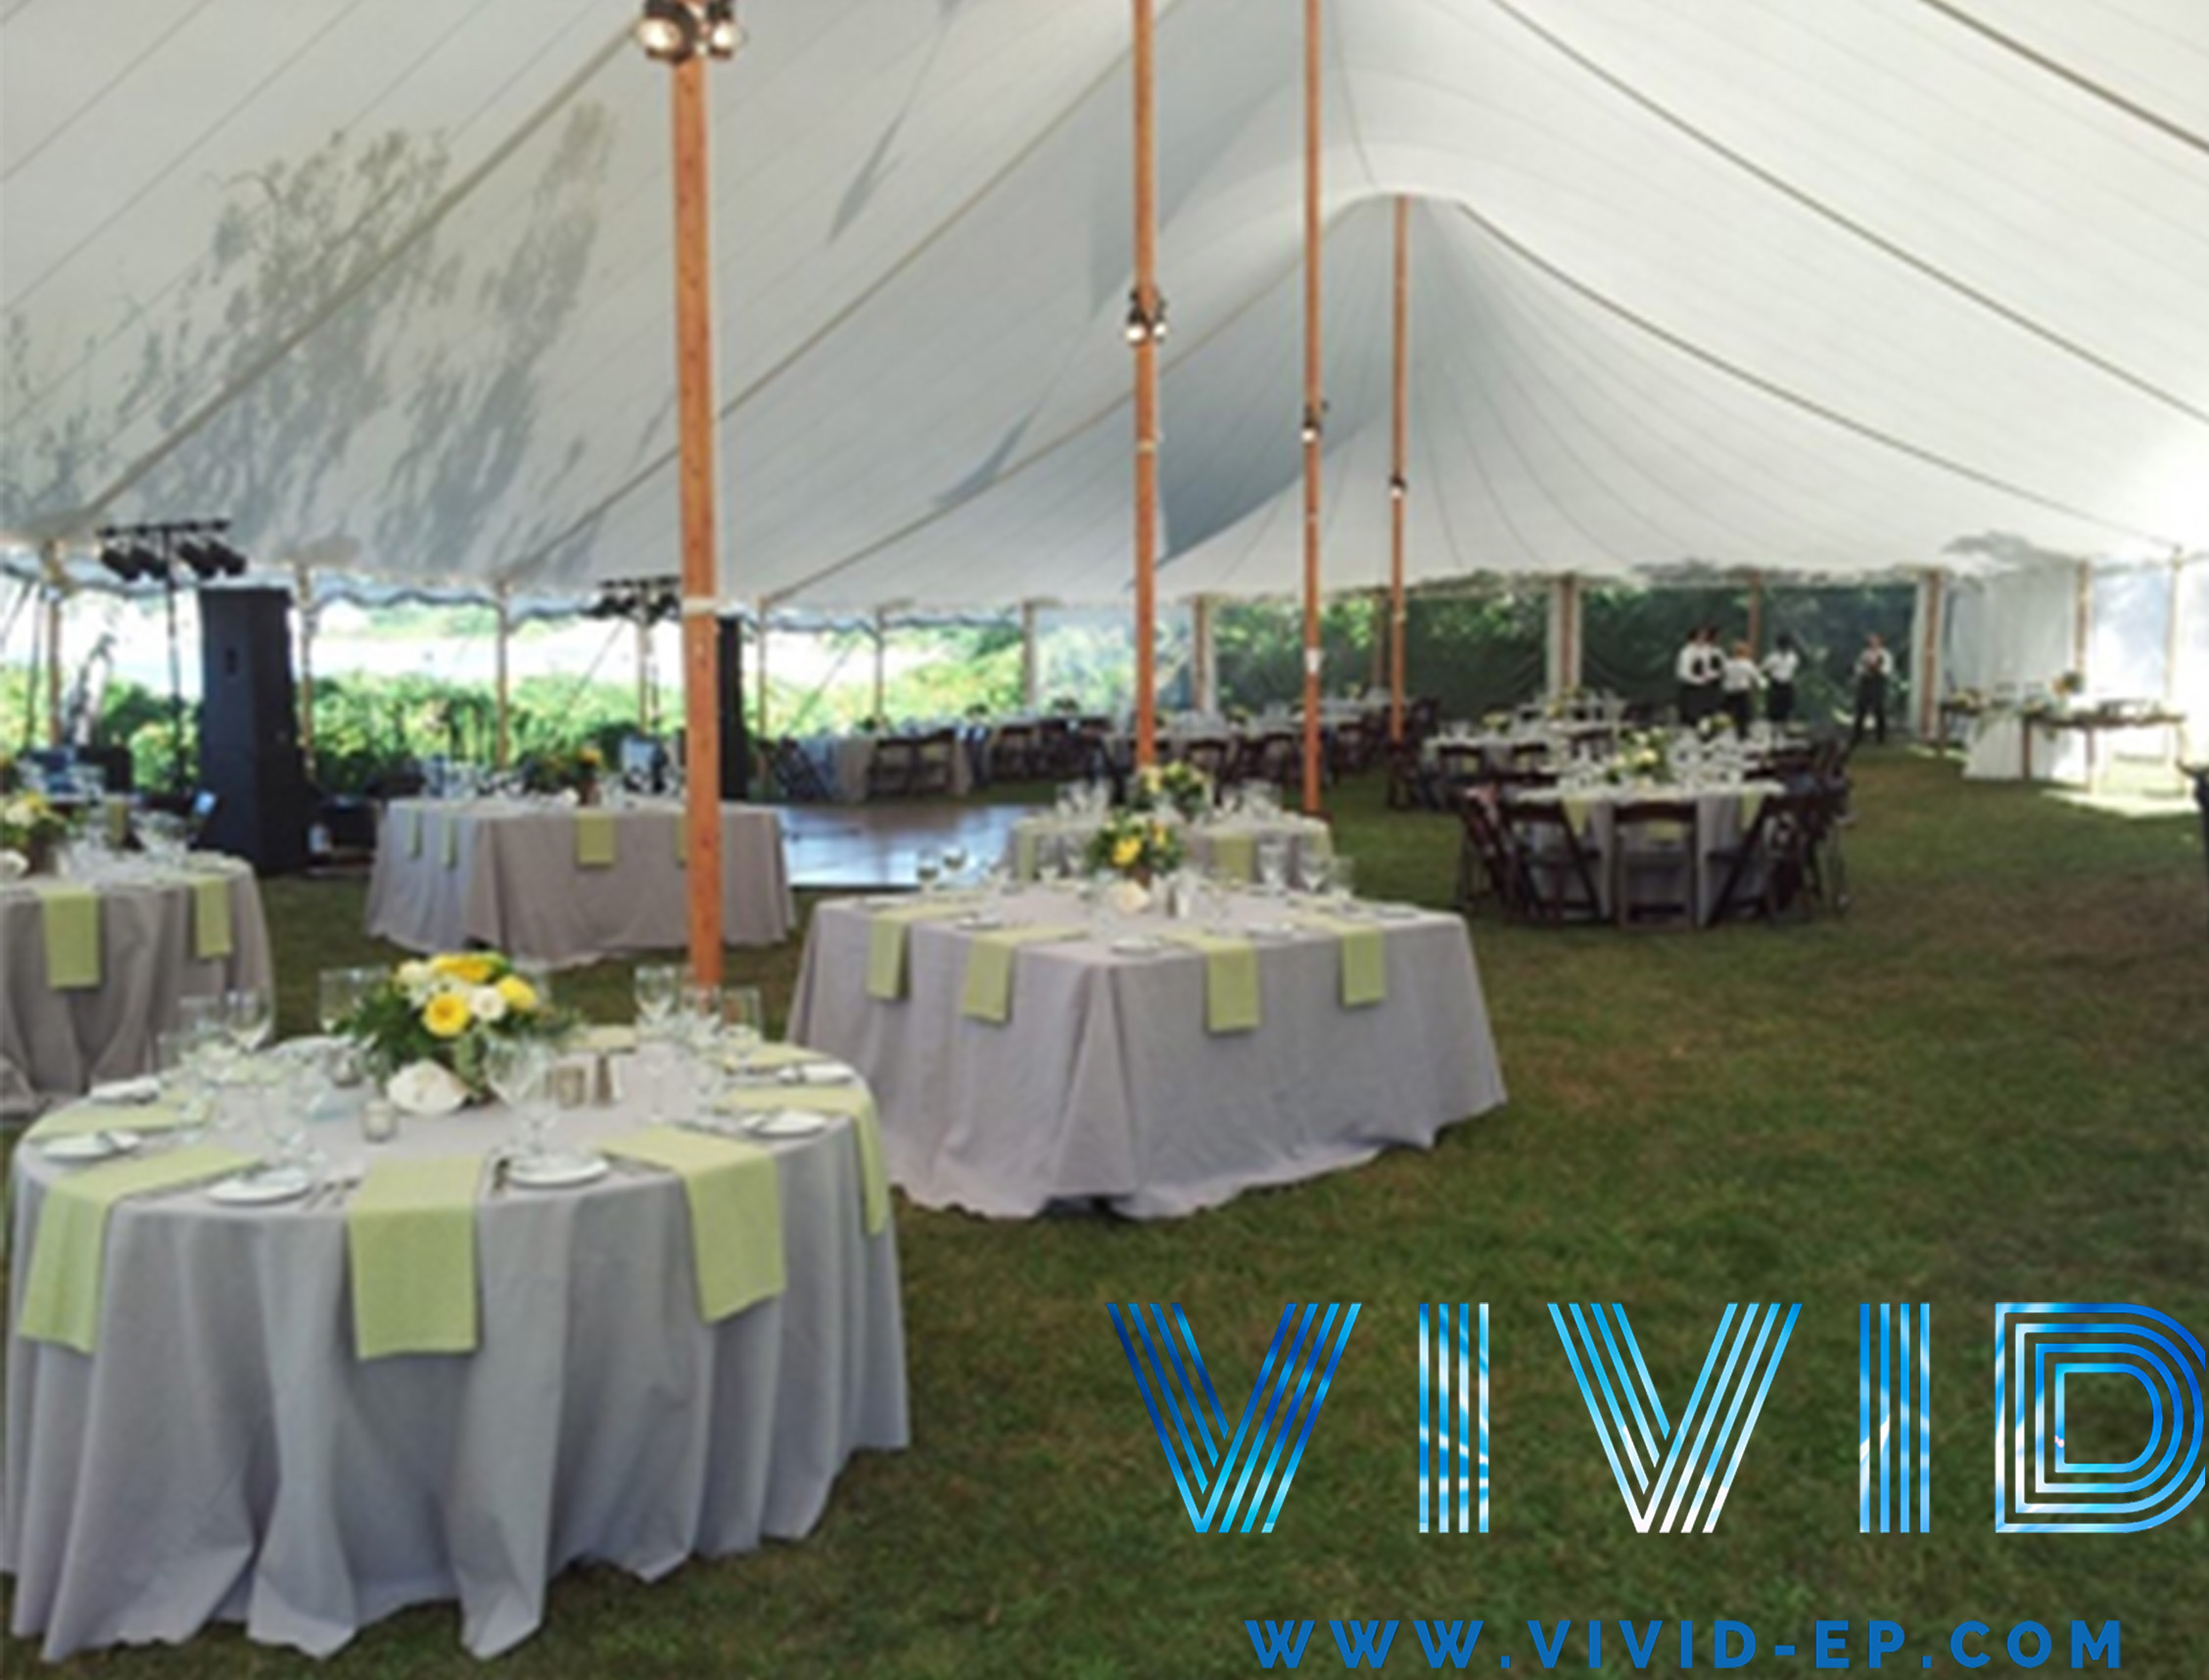 Tent rentals, table settings, floral arrangements, and drapery can all be provided for your one stop shop